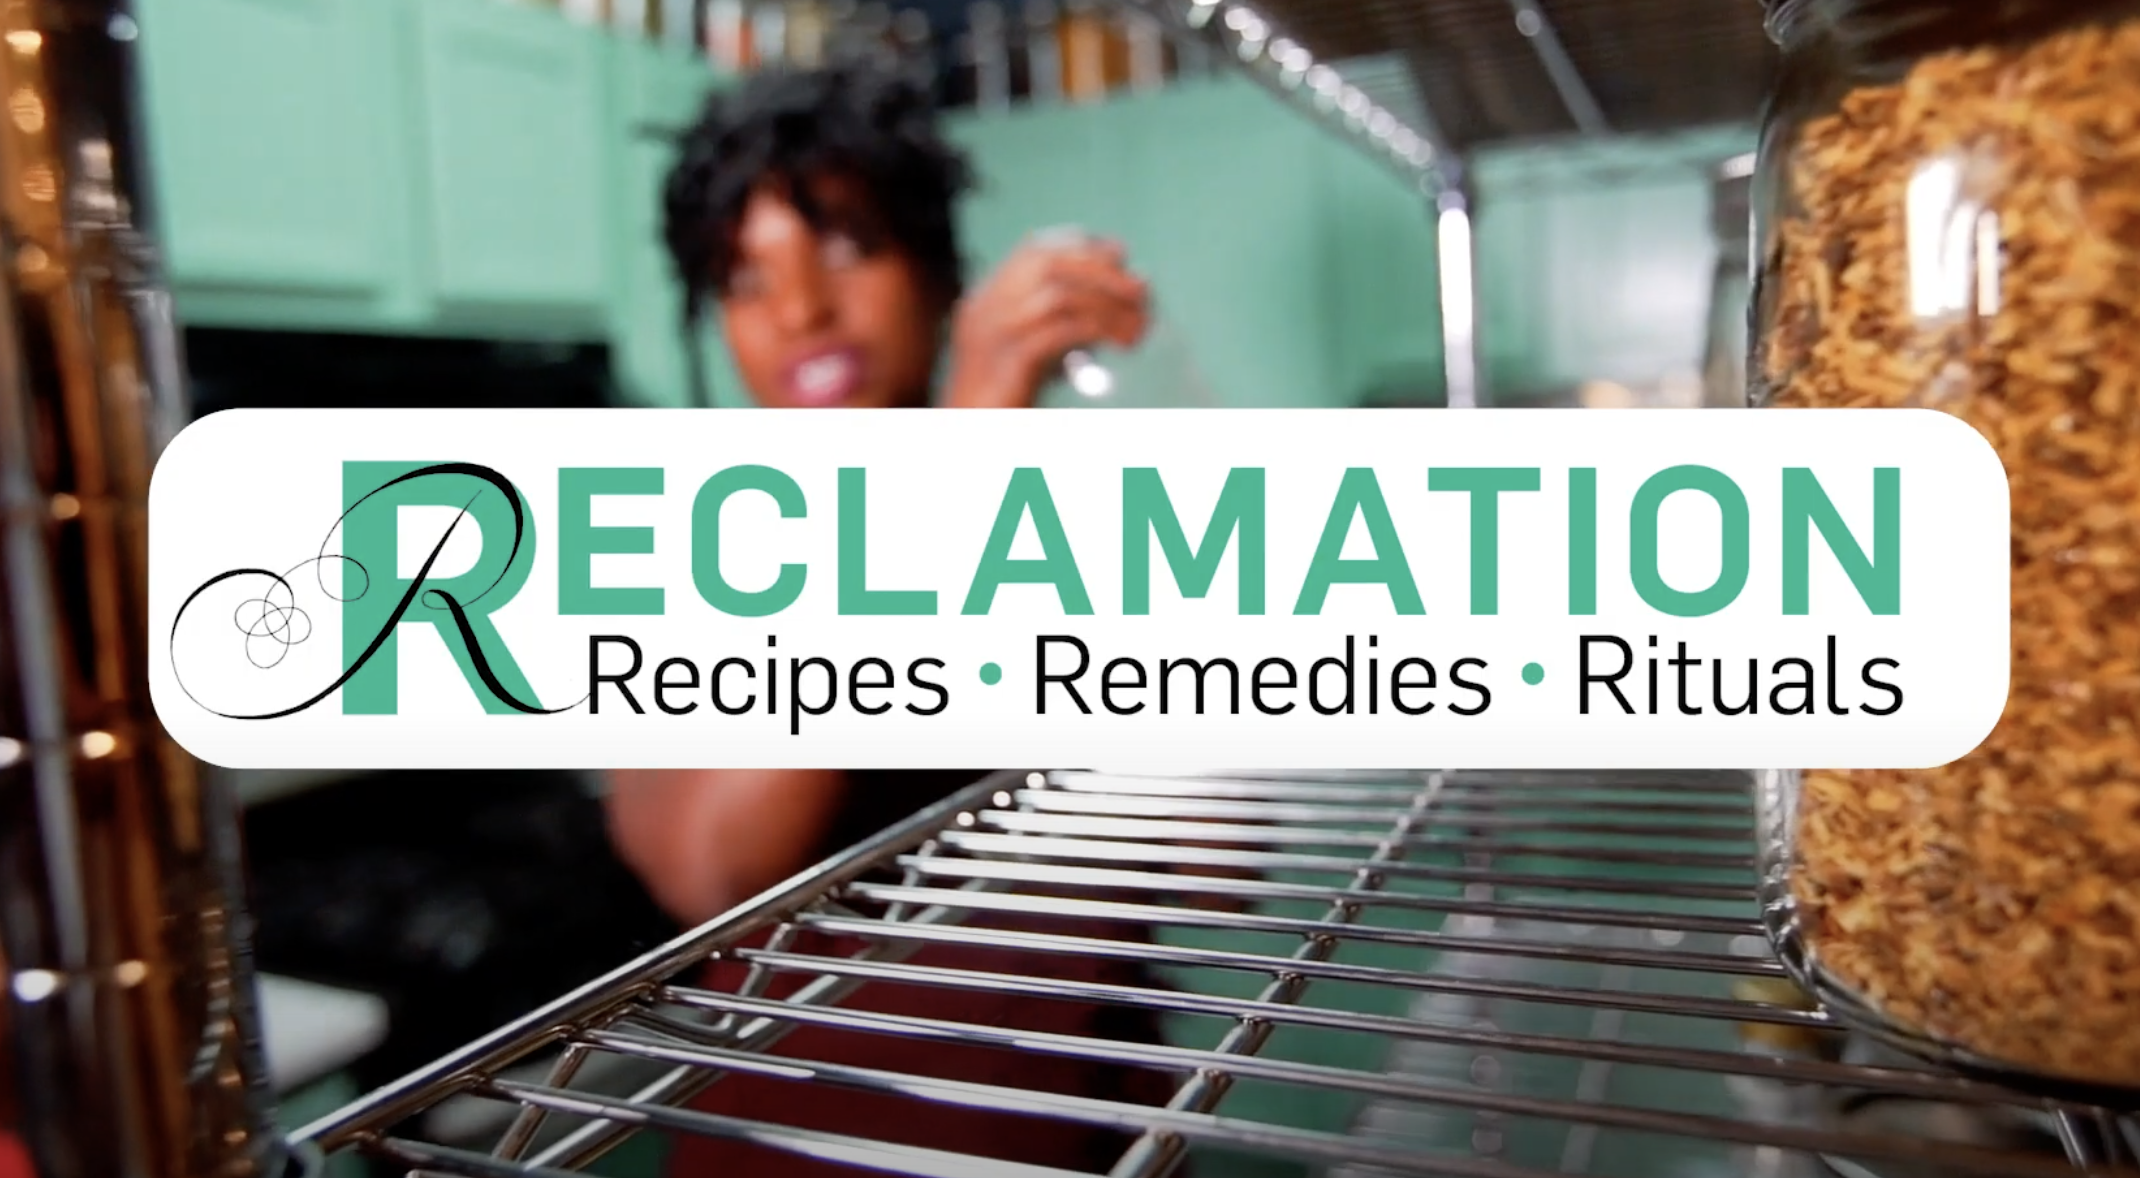 A white rectangle with green and black text that reads 'RECLAMATION: Recipes, Remedies, Rituals'. Behind the rectangle is a blurry image of a dark-skinned adult woman and her dark-skinned child in a turquoise-colored pantry, with a metal rack and a jar in the foreground to the right.